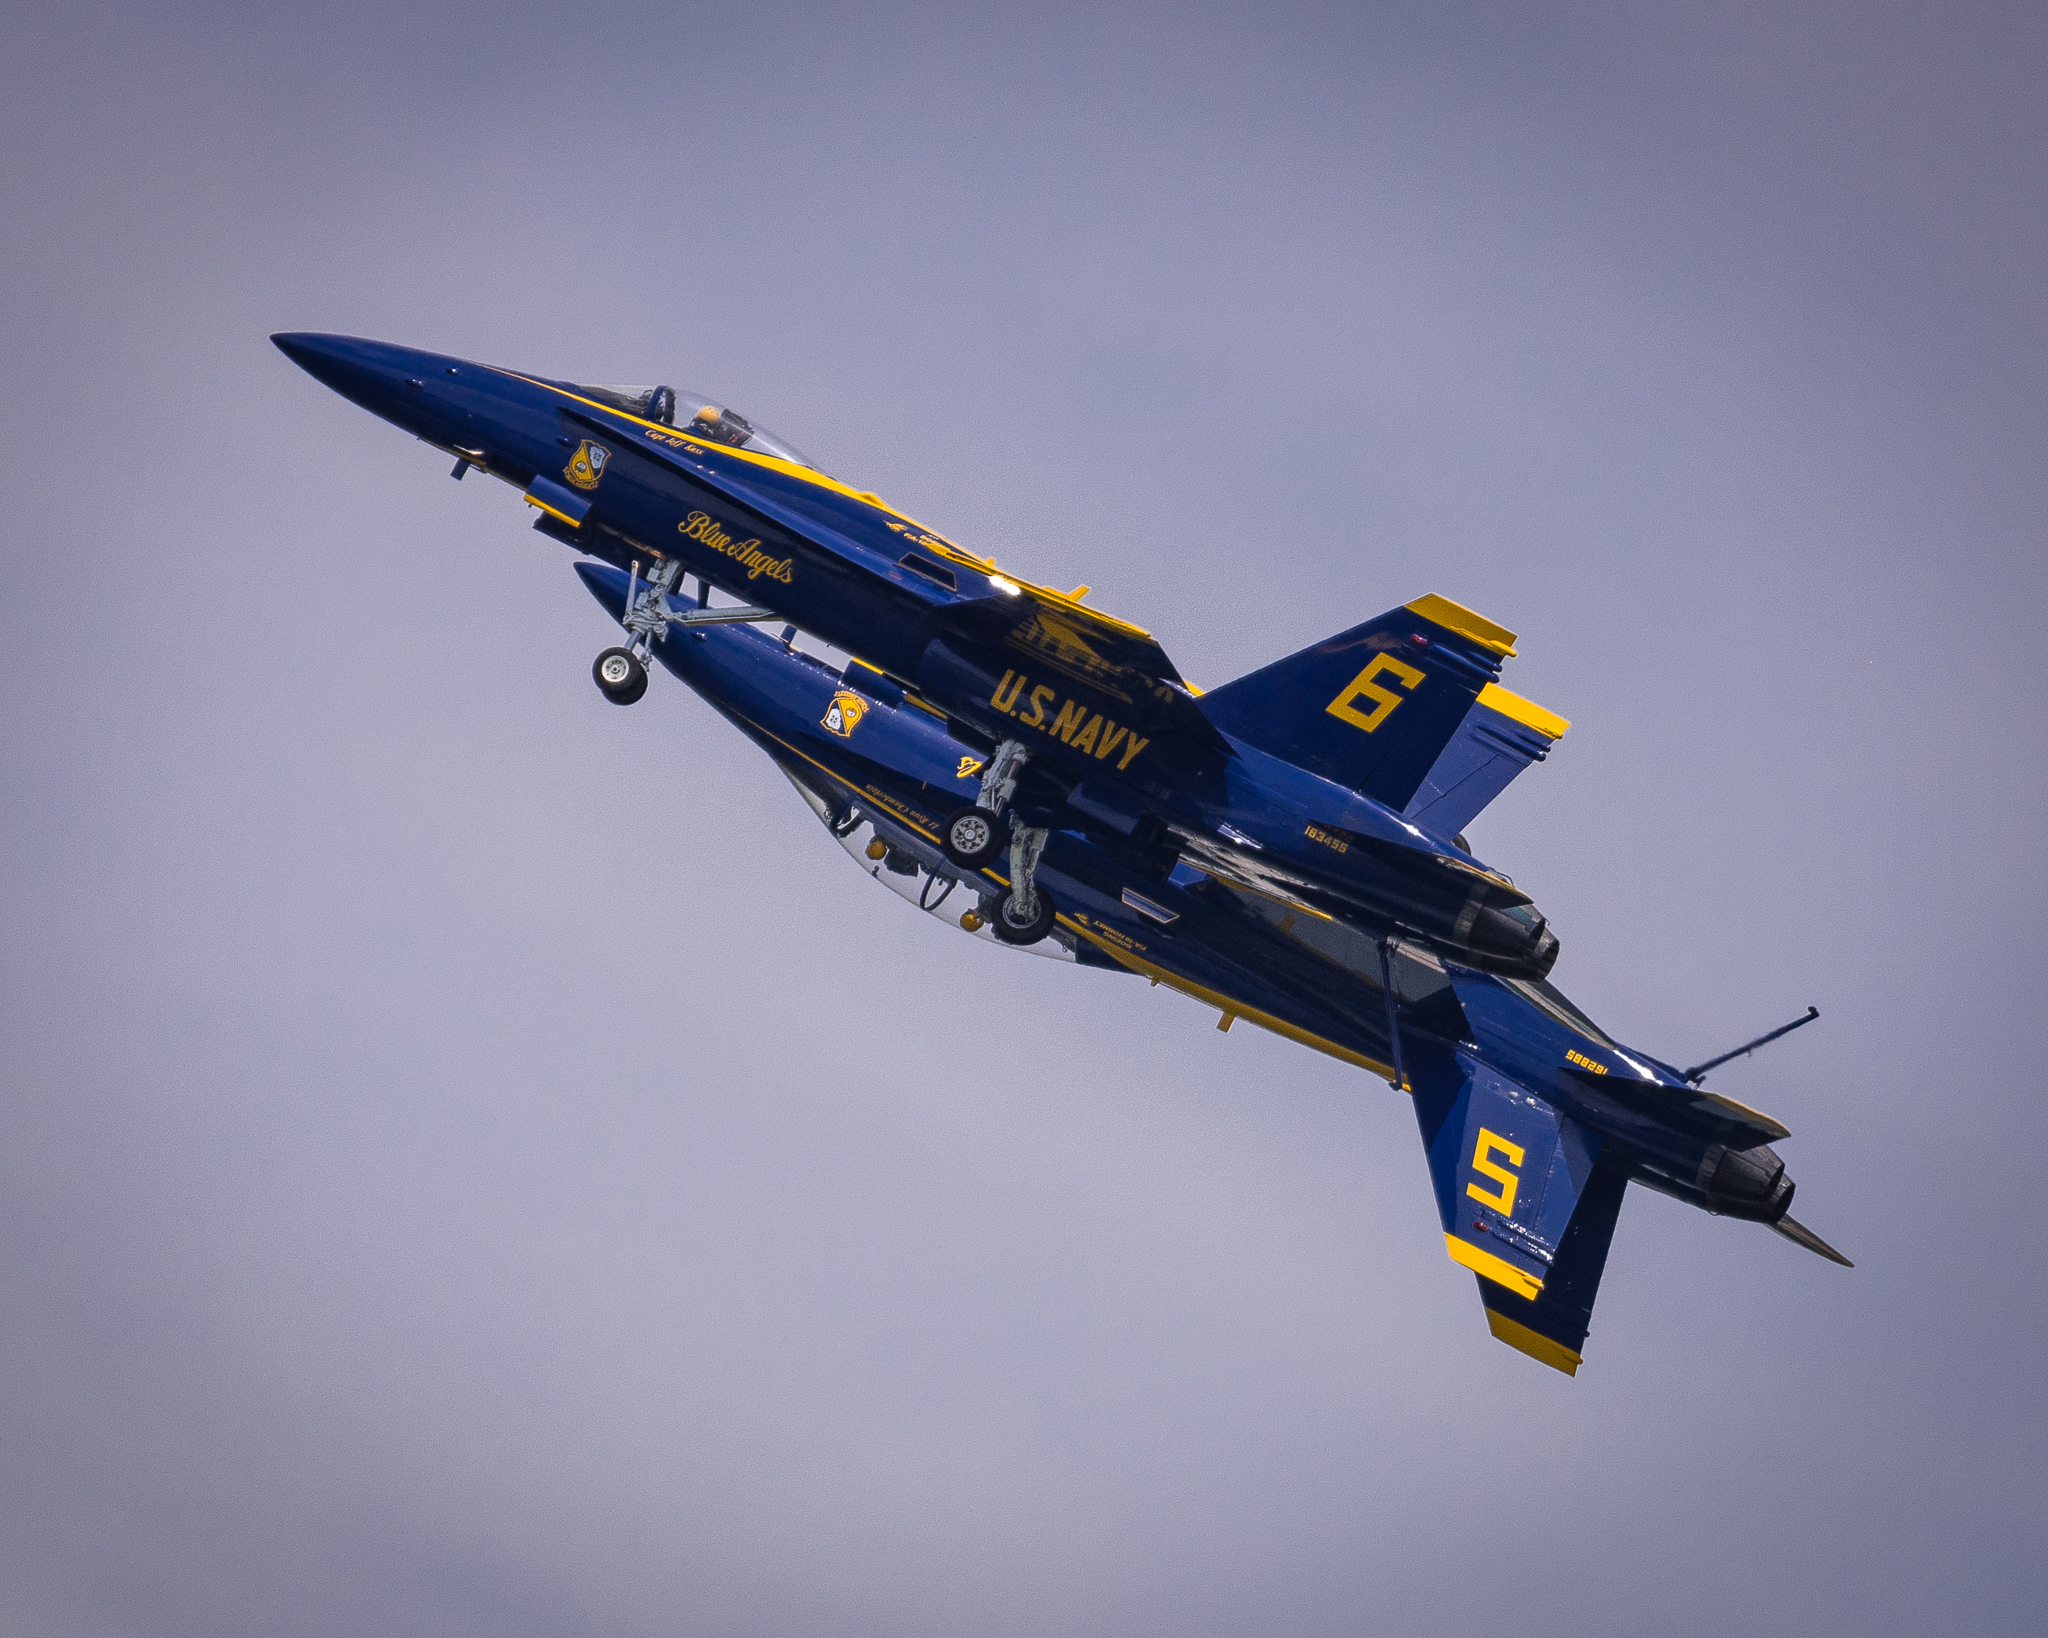 The Blue Angels over Annapolis, MD. A week later,Captain Jeff Kuss, pilot of #6, was tragically killed in a crash in TN. http://local15tv.com/news/local/funeral-held-for-fallen-blue-angel-capt-jeff-kuss